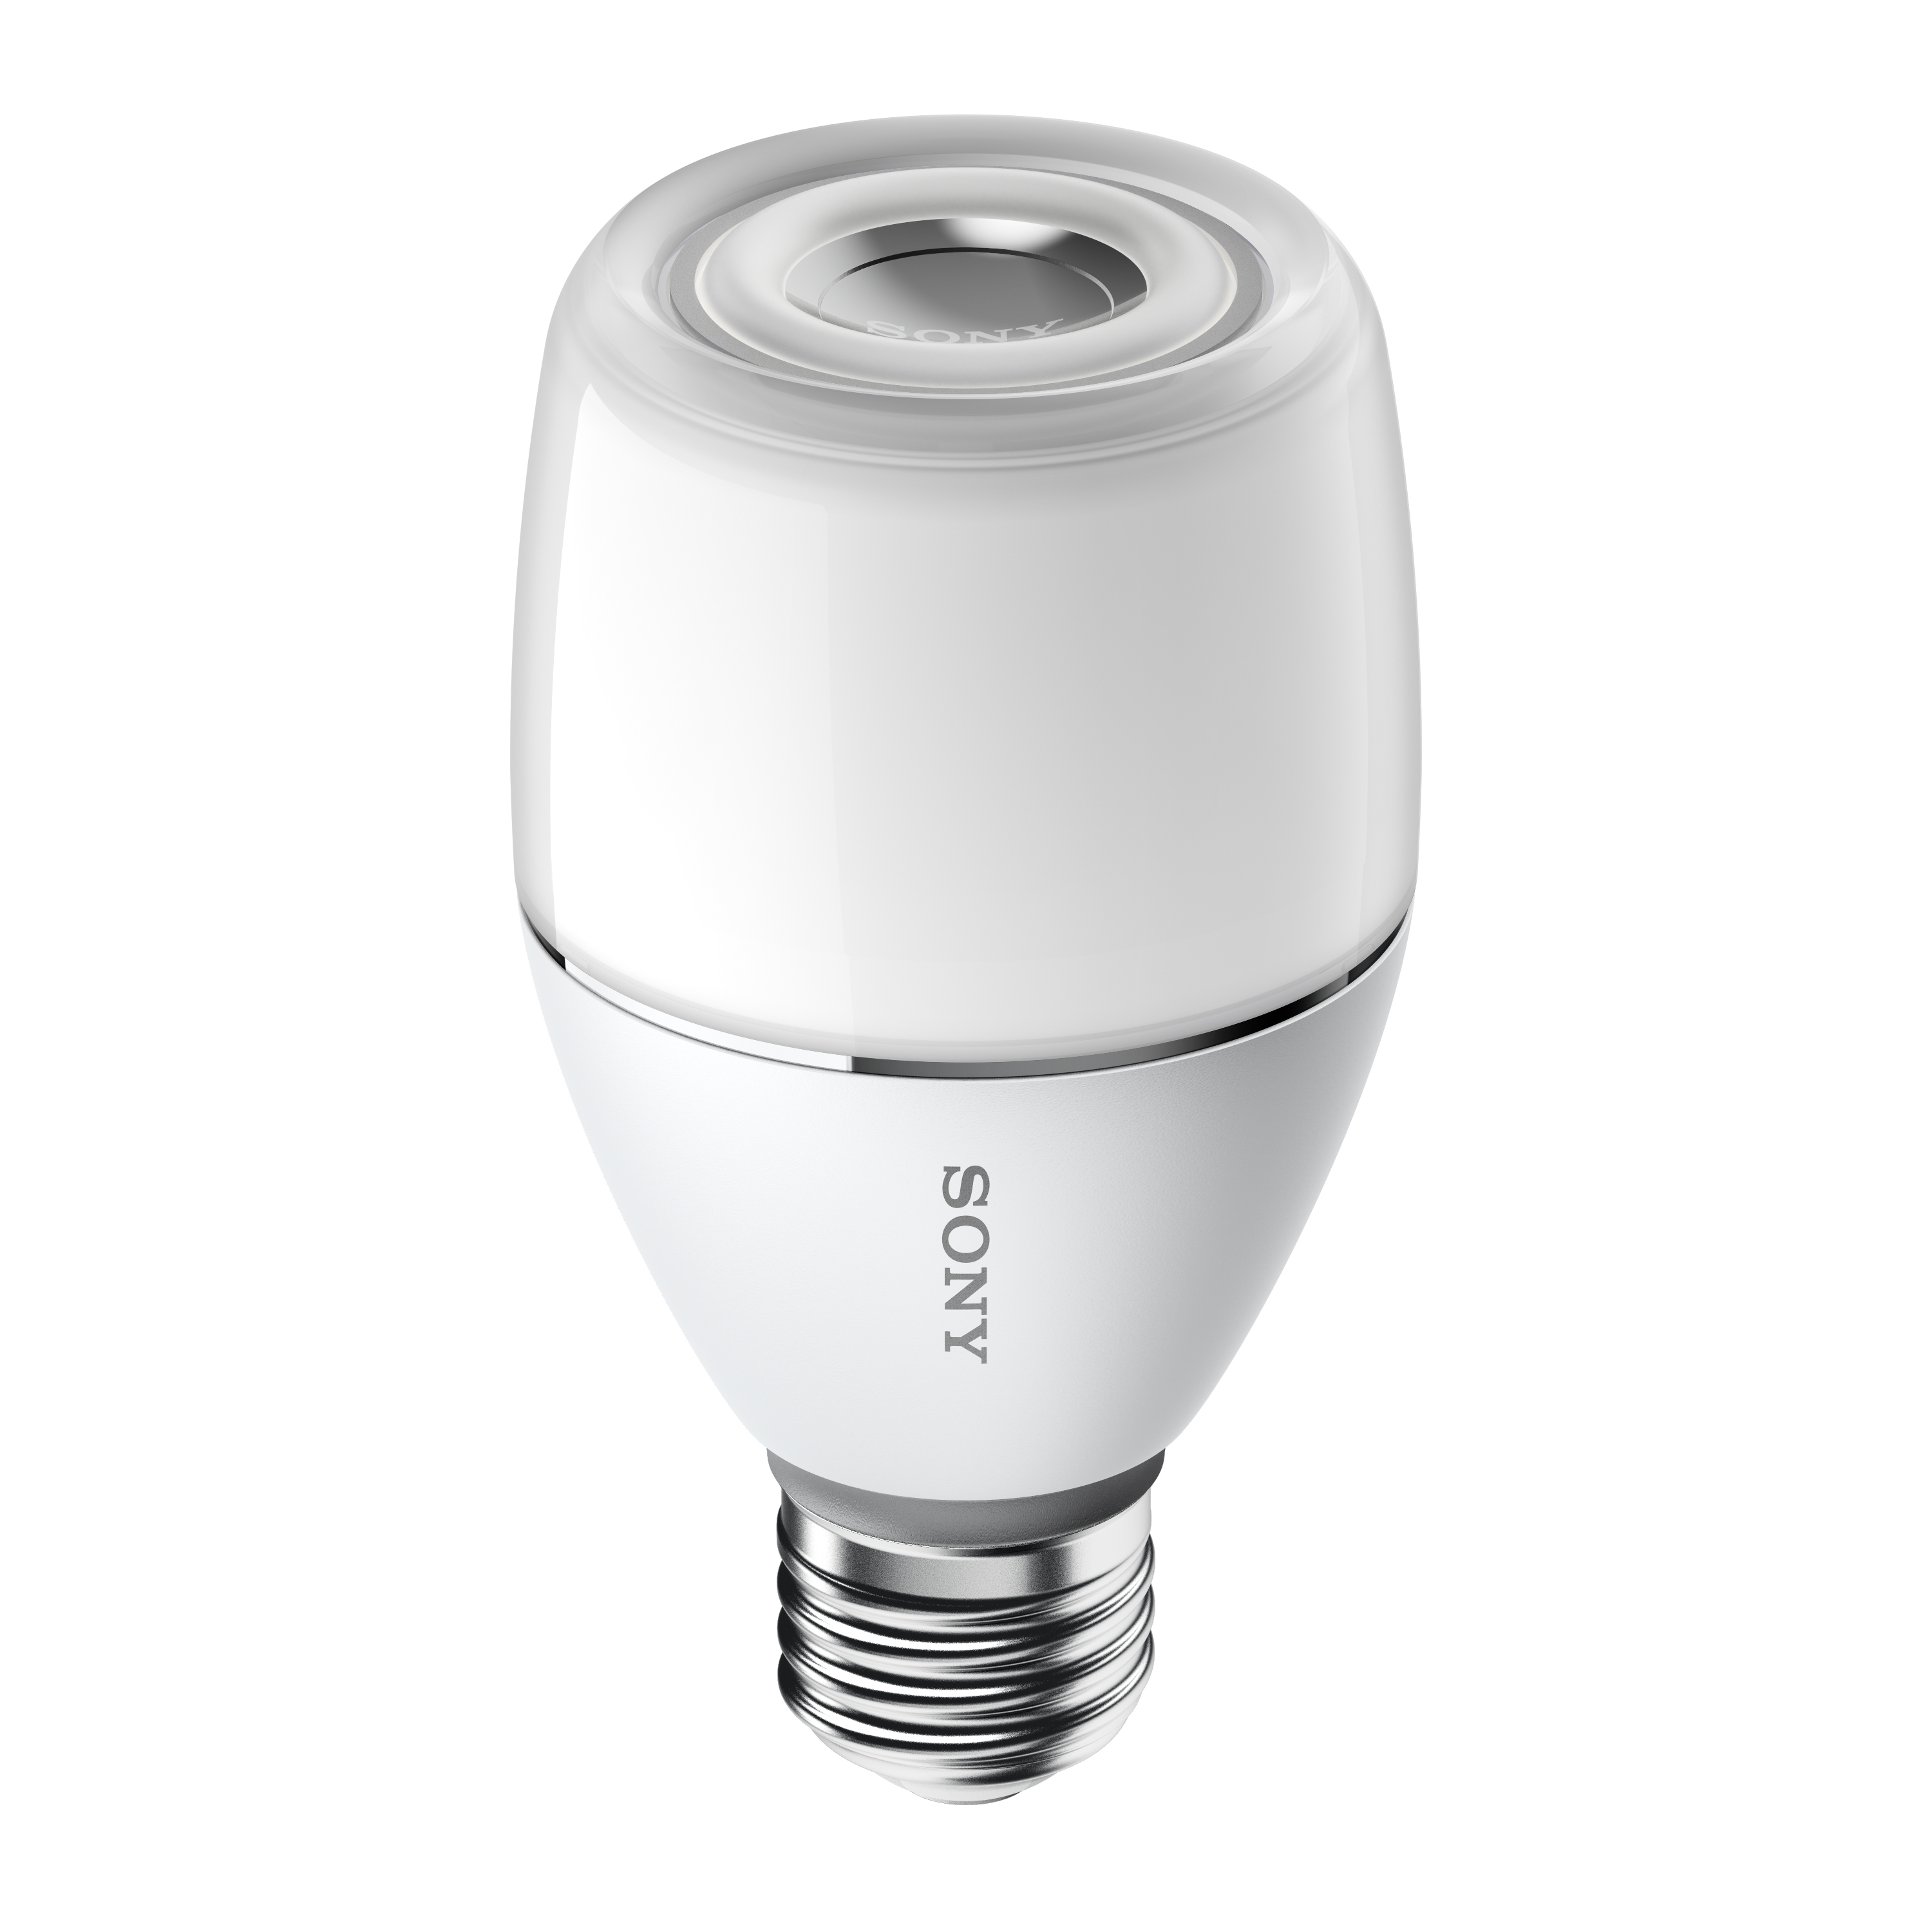 Sony Led Bulb Speaker Residential Products Online